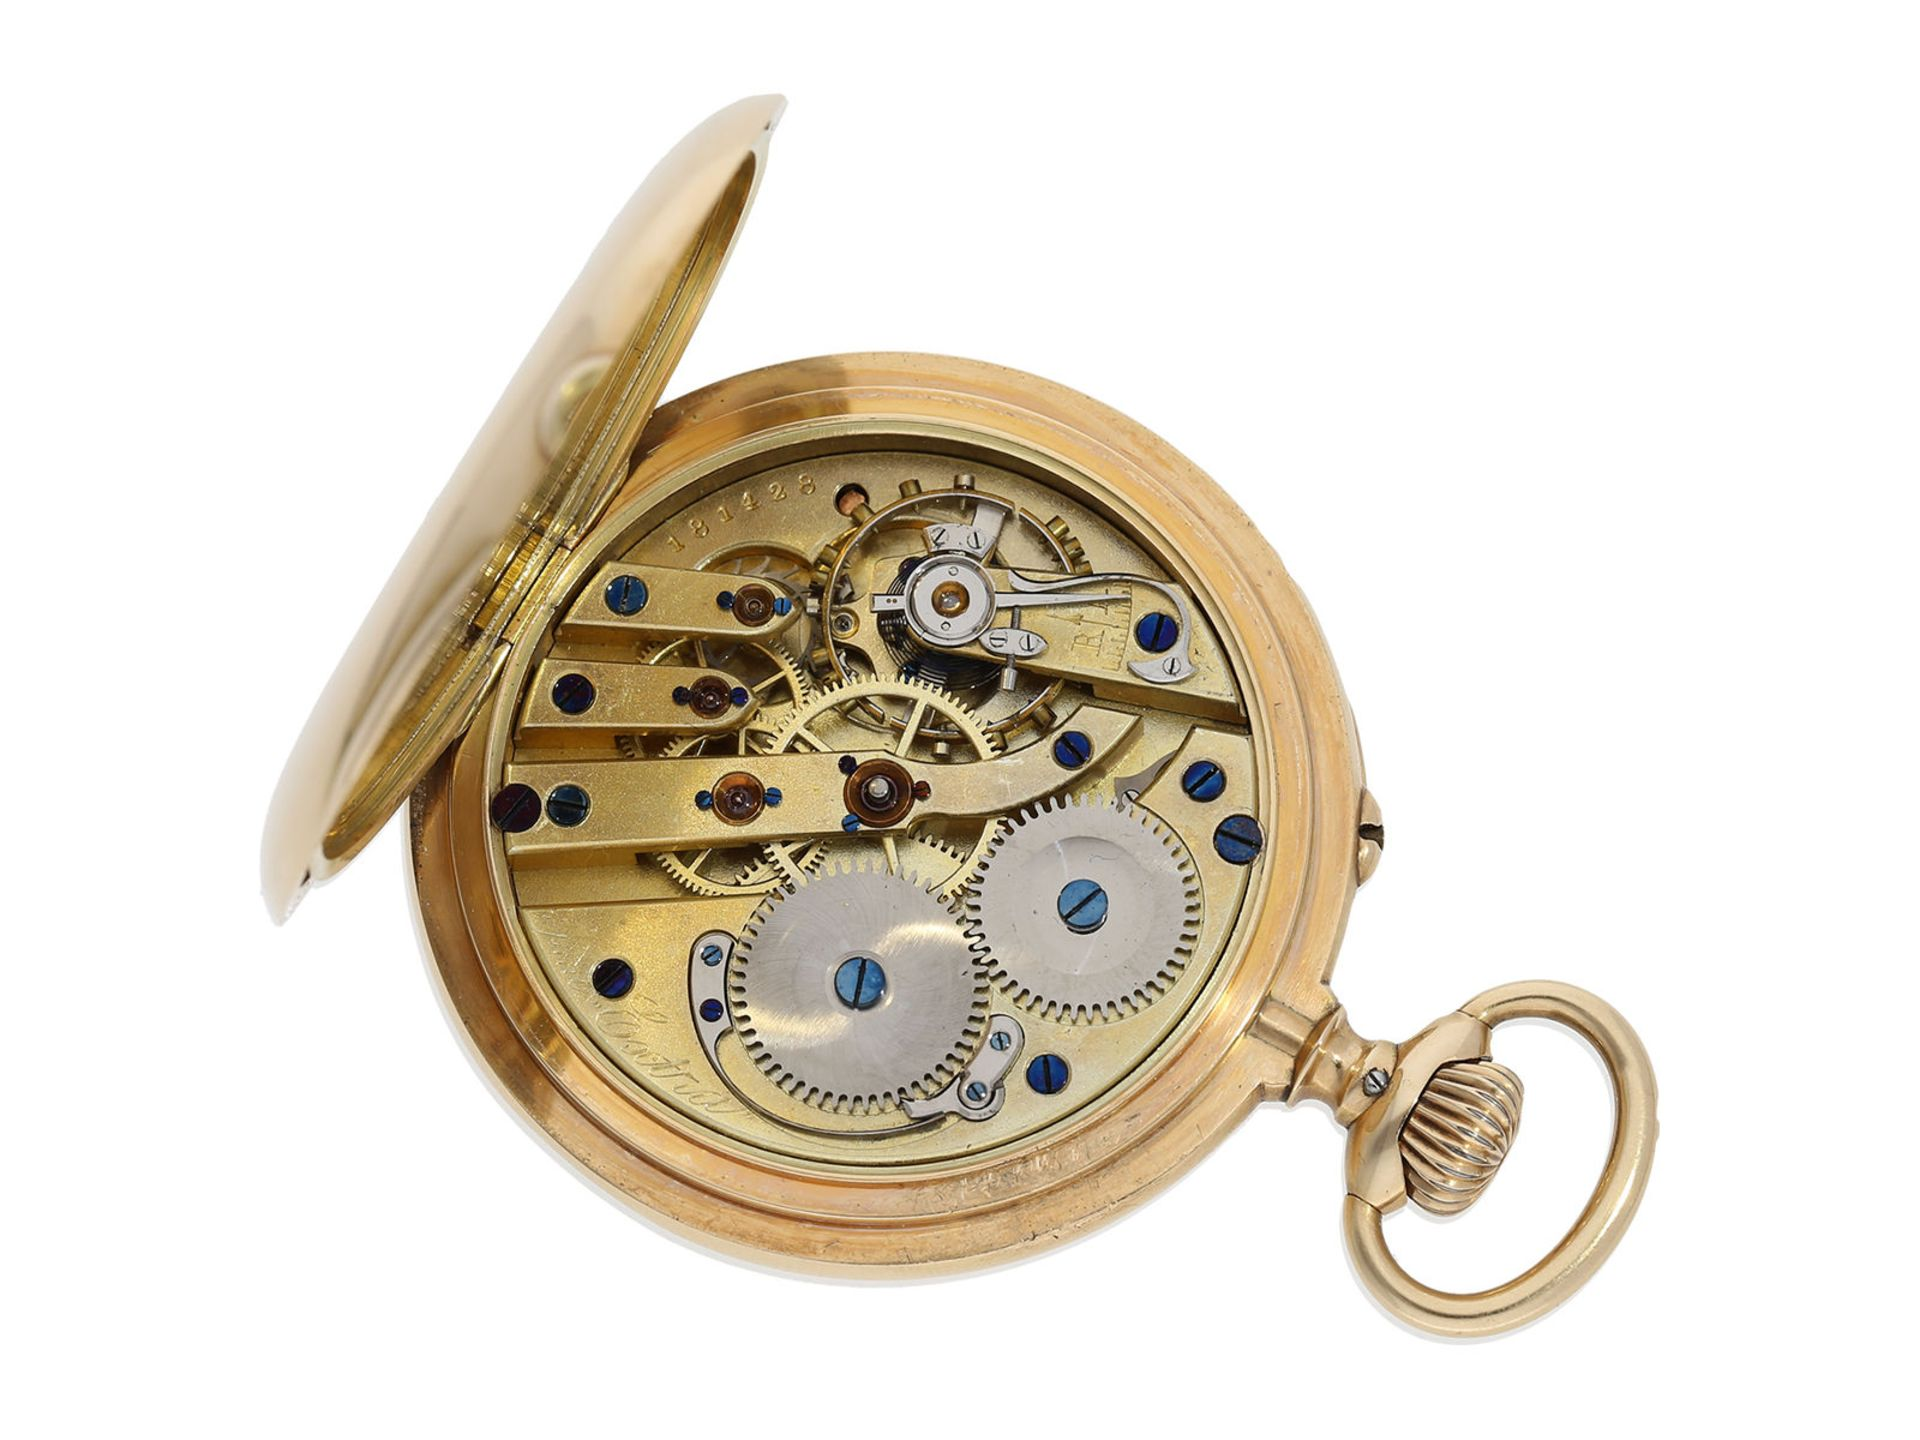 "Pocket watch: very rare IWC precision pocket watch quality ""EXTRA"", No. 181428, Schaffhausen ca. - Bild 2 aus 6"